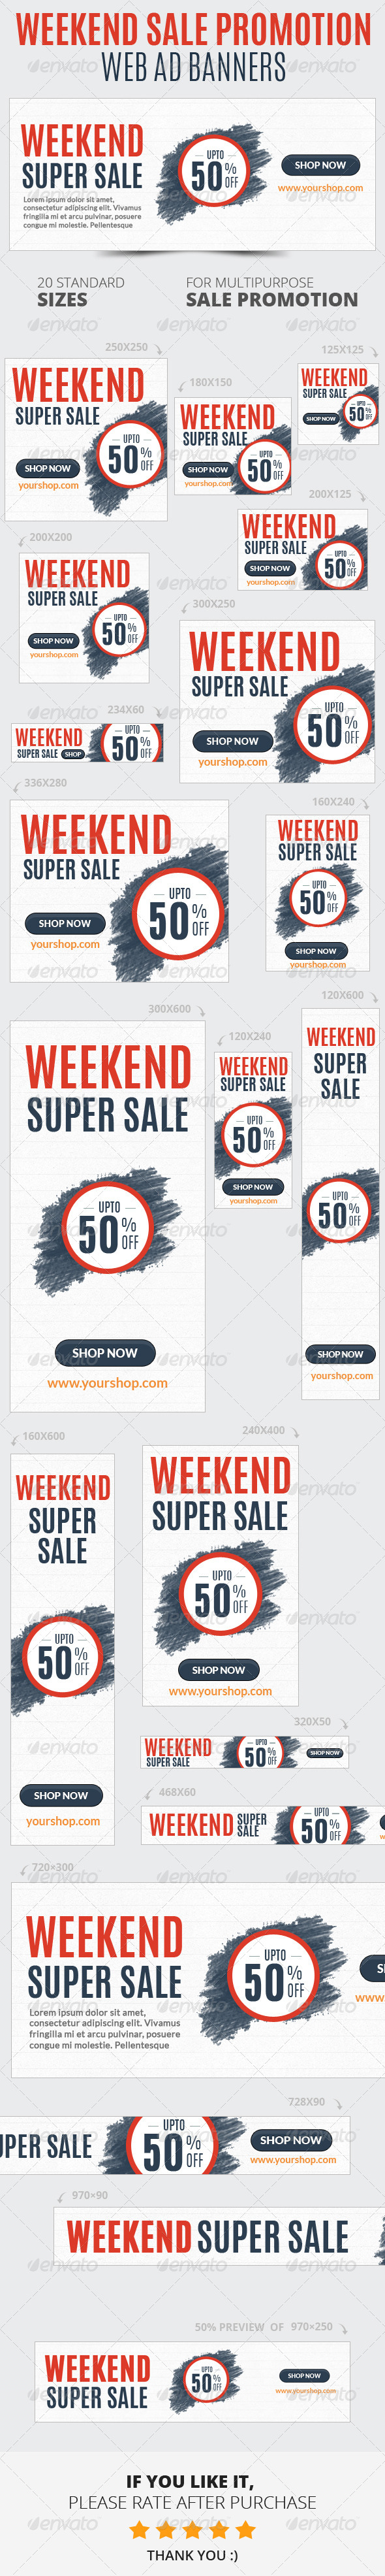 Weekend Sale Promotion Web Ad Banners - Banners & Ads Web Elements